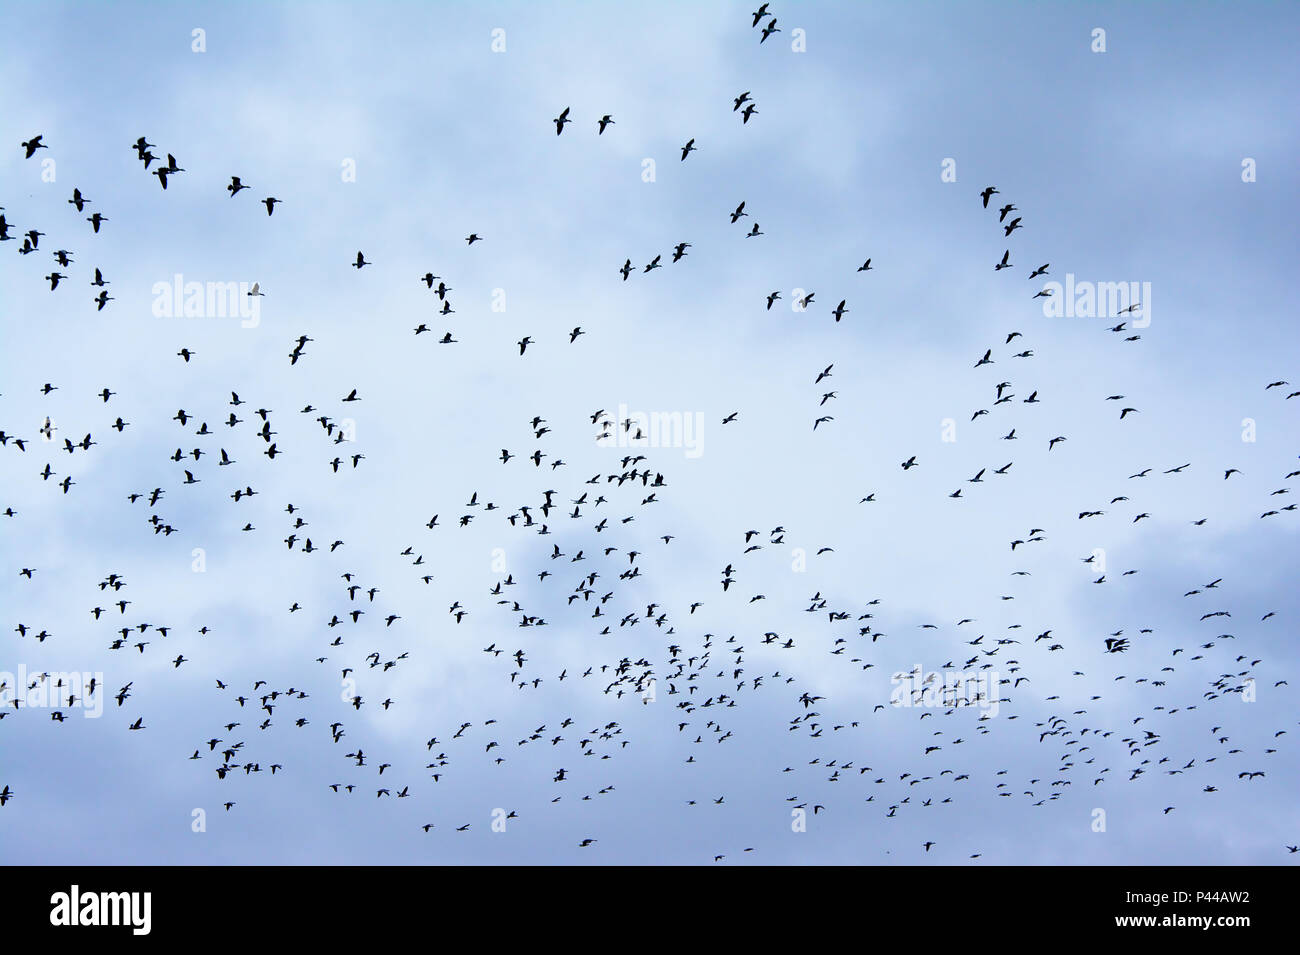 Big swarm of geese in flight formation, migrating before the winter comes, on a soft cloudy sky - Stock Image